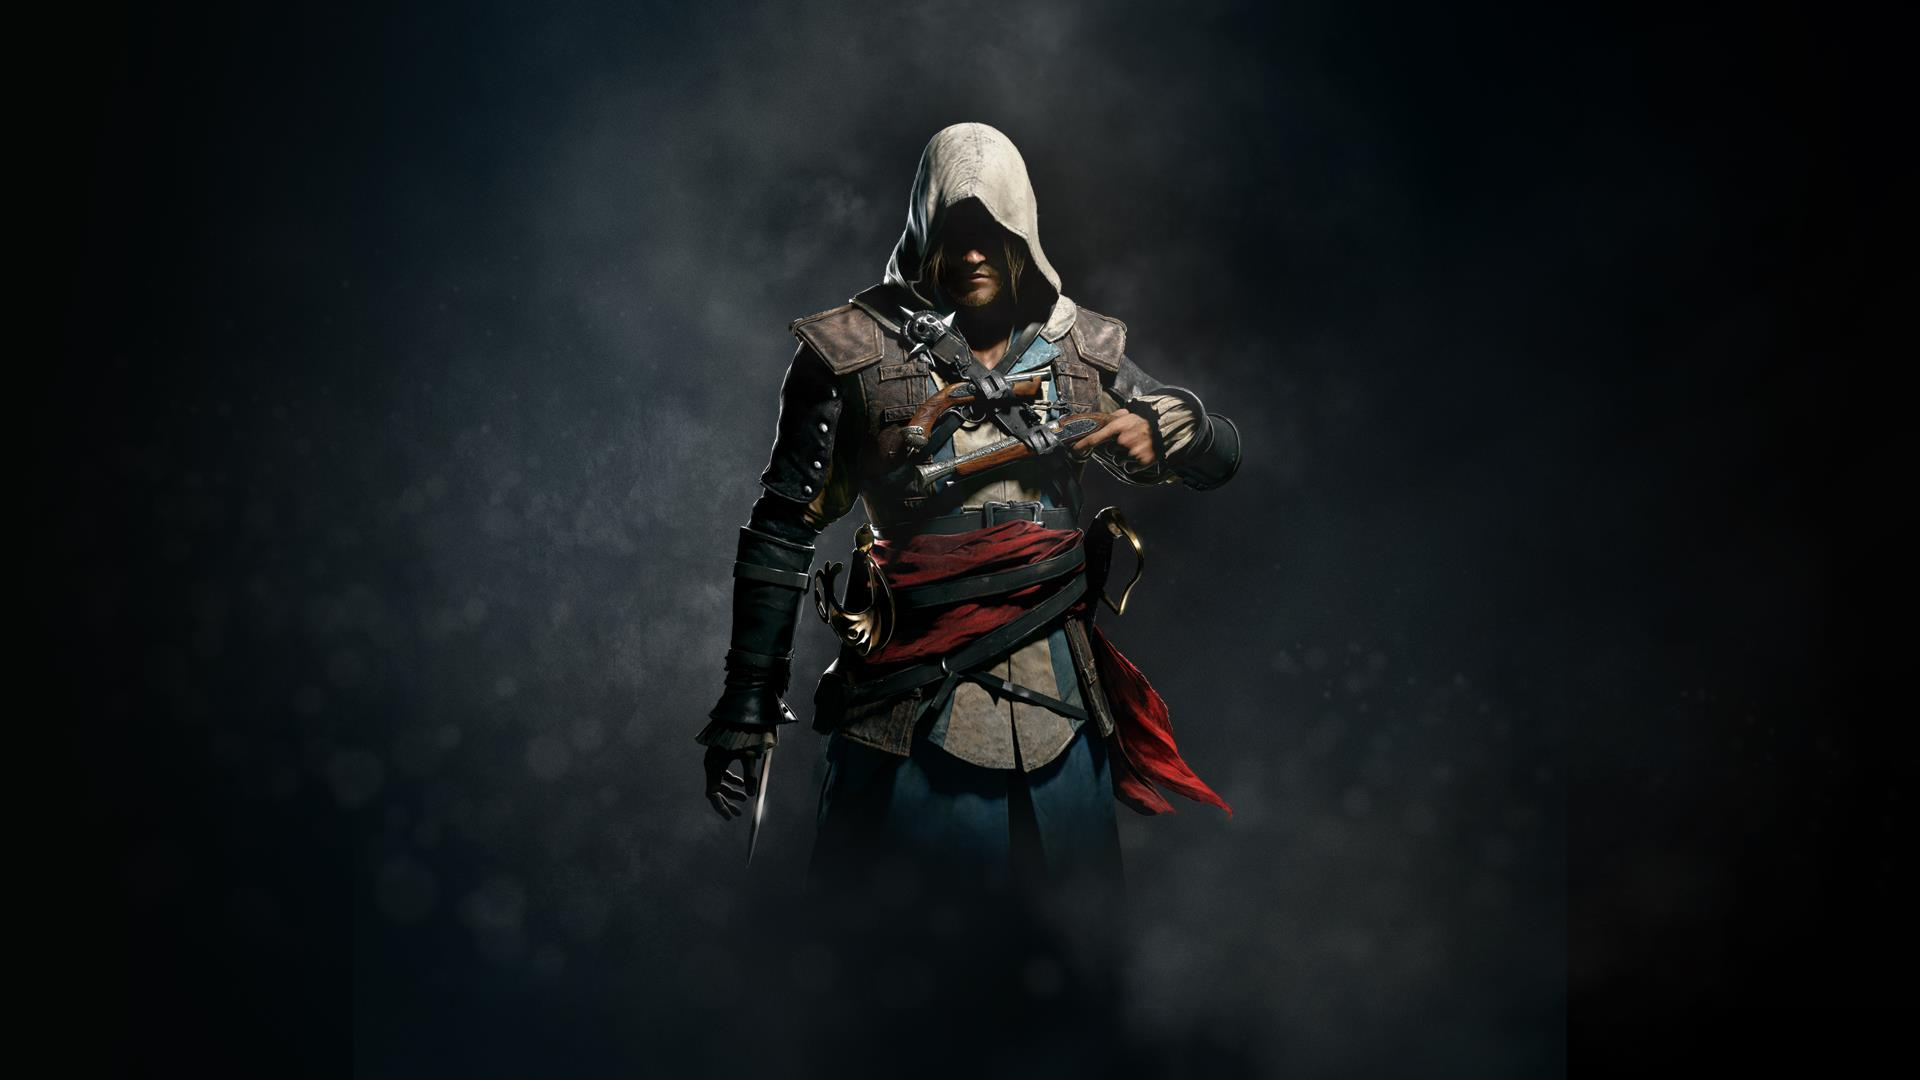 Ghost In The Machine in Assassin's Creed IV: Black Flag